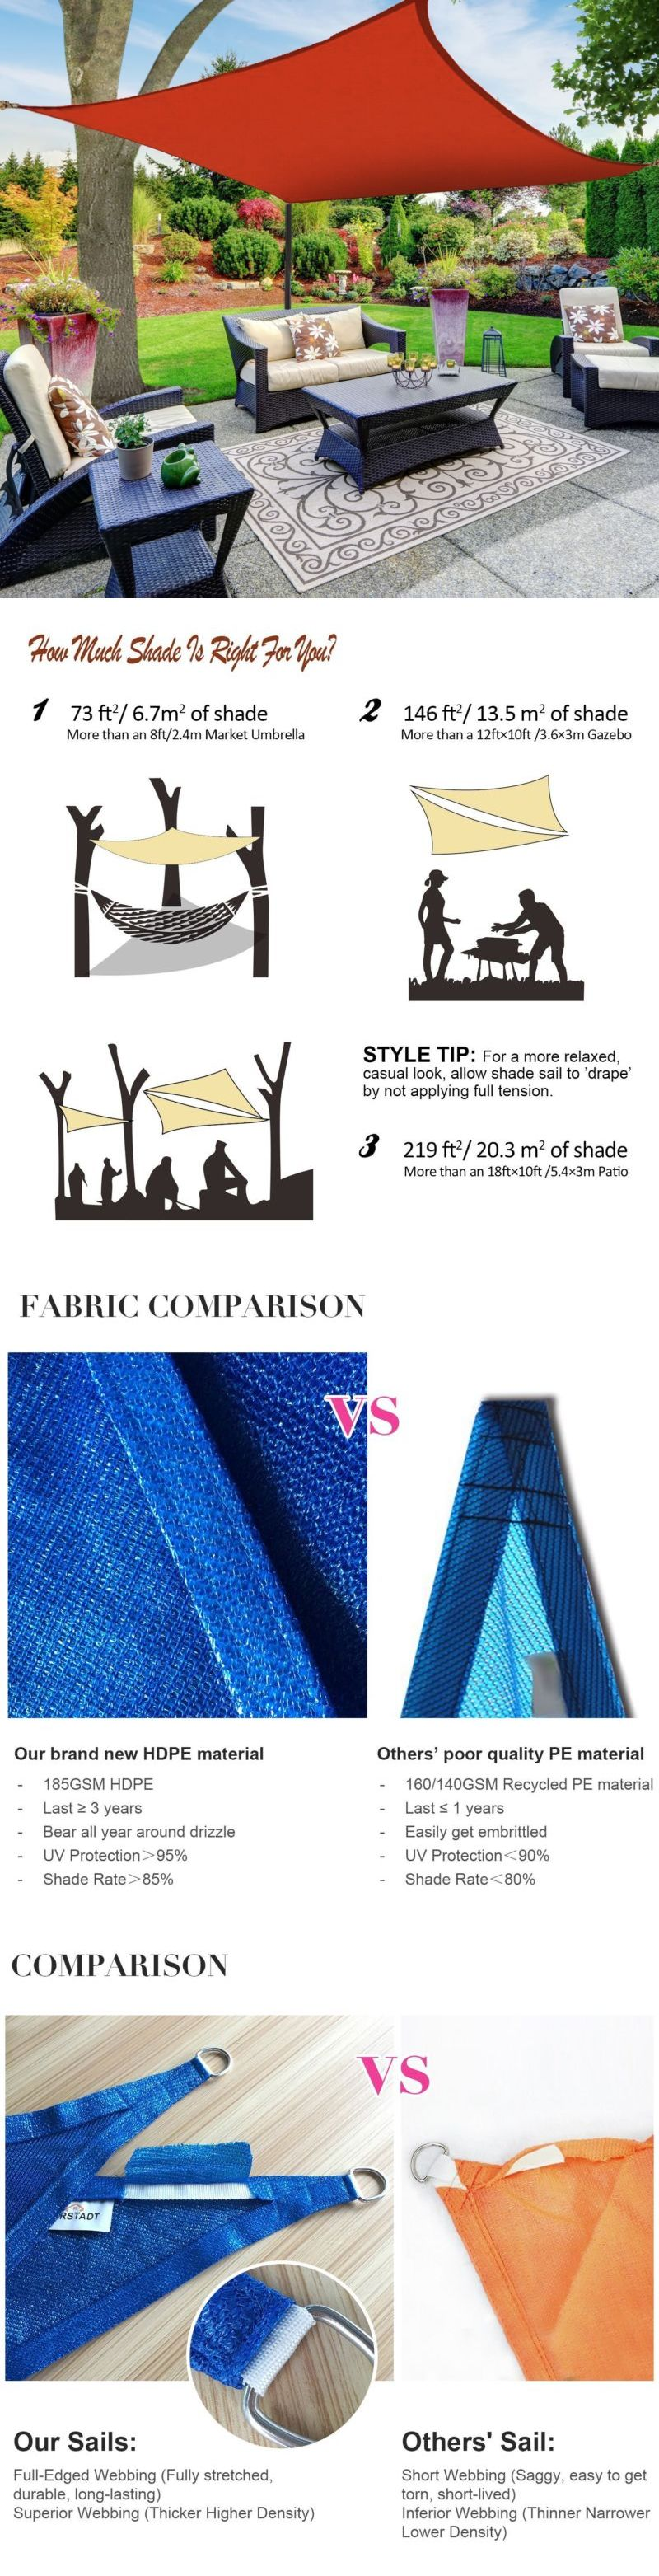 large shade sails for sale on shade sails 180997 12 square sun shade sail fabric random color outdoor patio uv block cover buy it now only 18 89 sun sail shade shade sail shade canopy pinterest